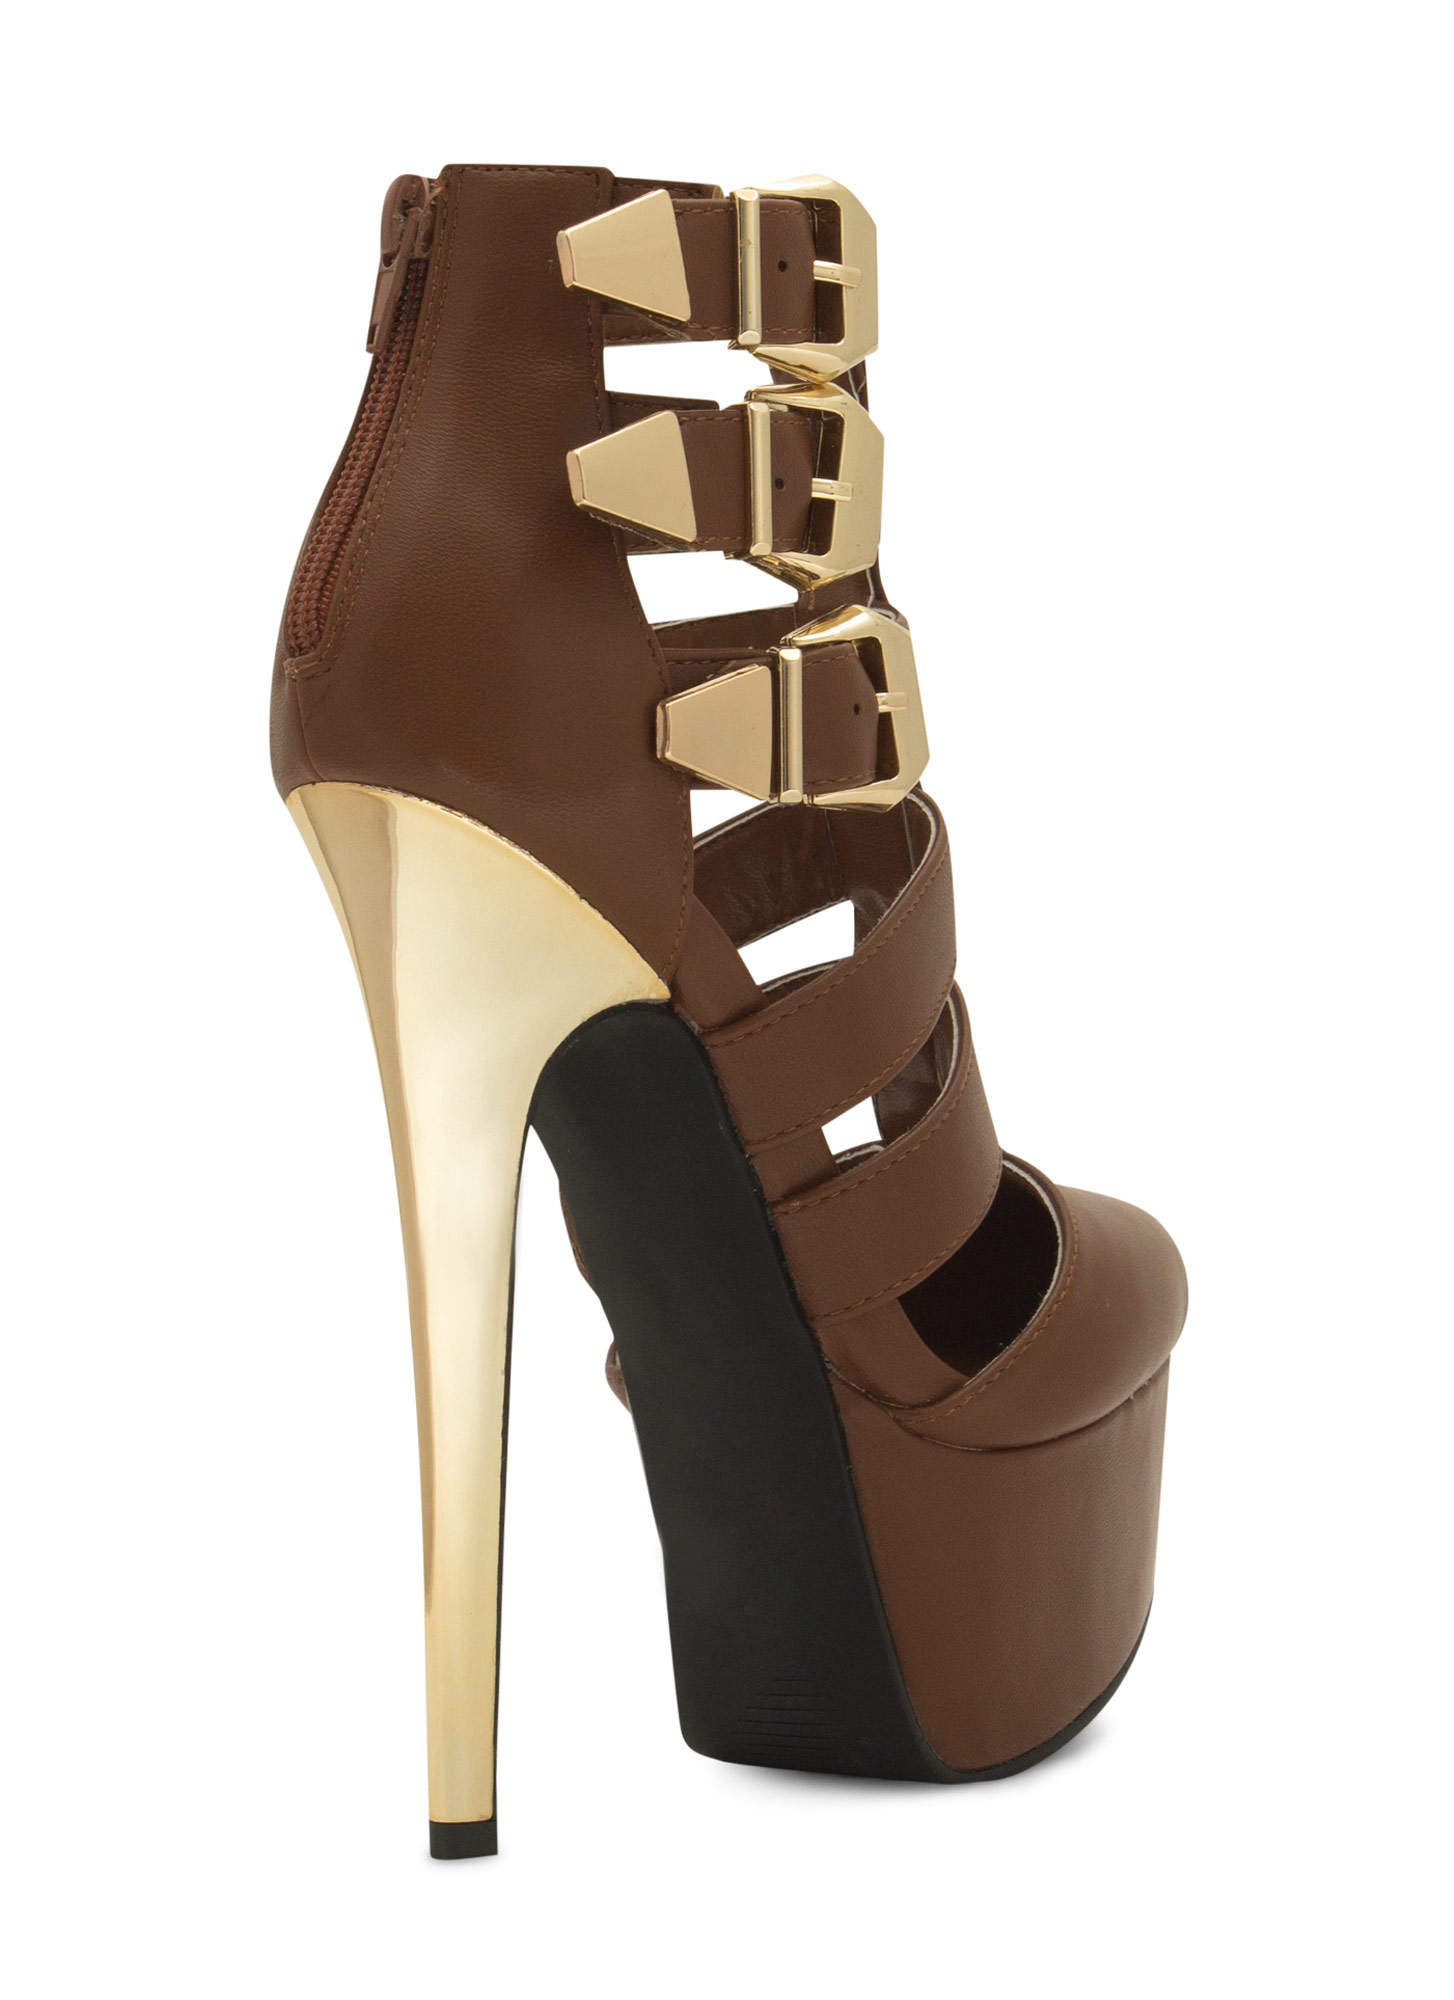 Laddered Tri-Buckle Heels LTBROWN